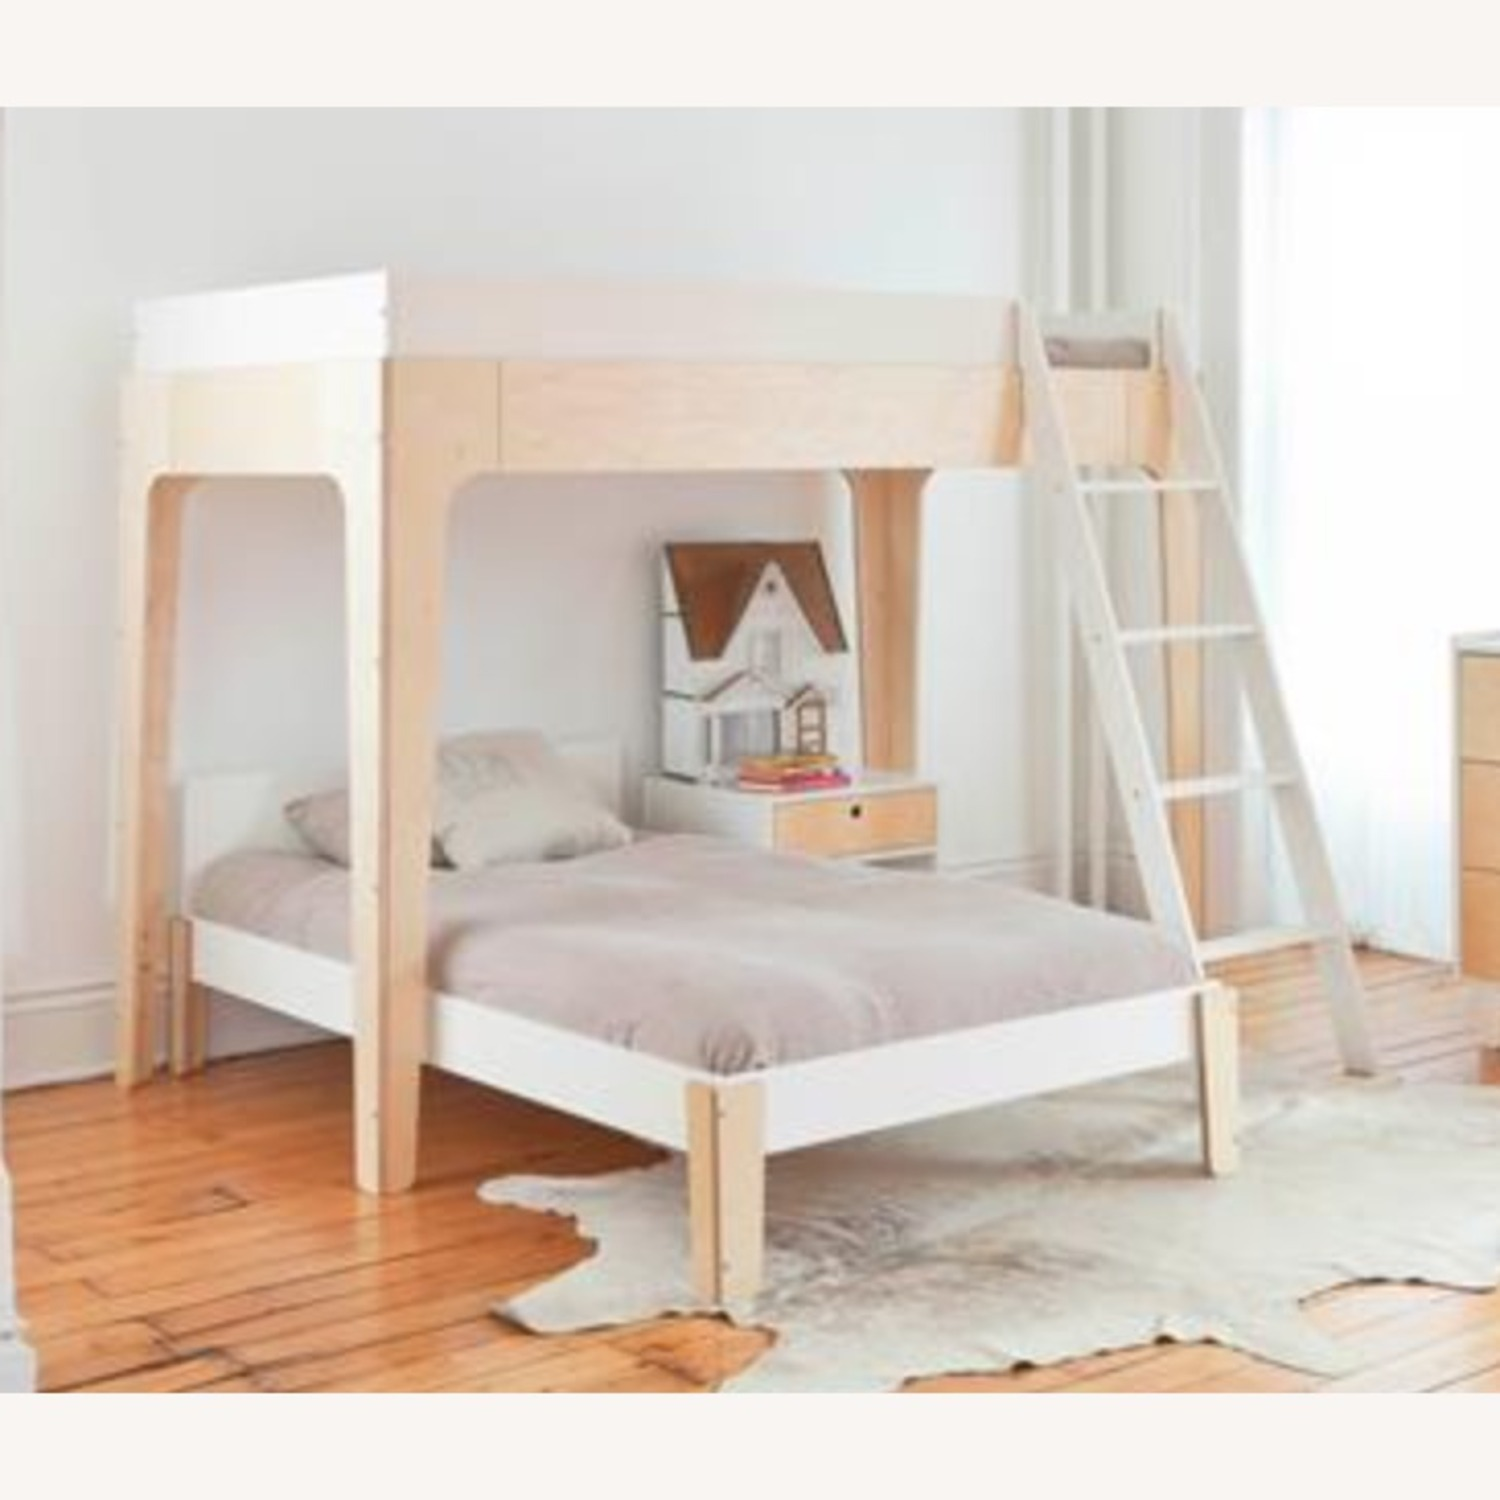 Oeuf Perch Modern Classic Birch Bunk Bed - image-2